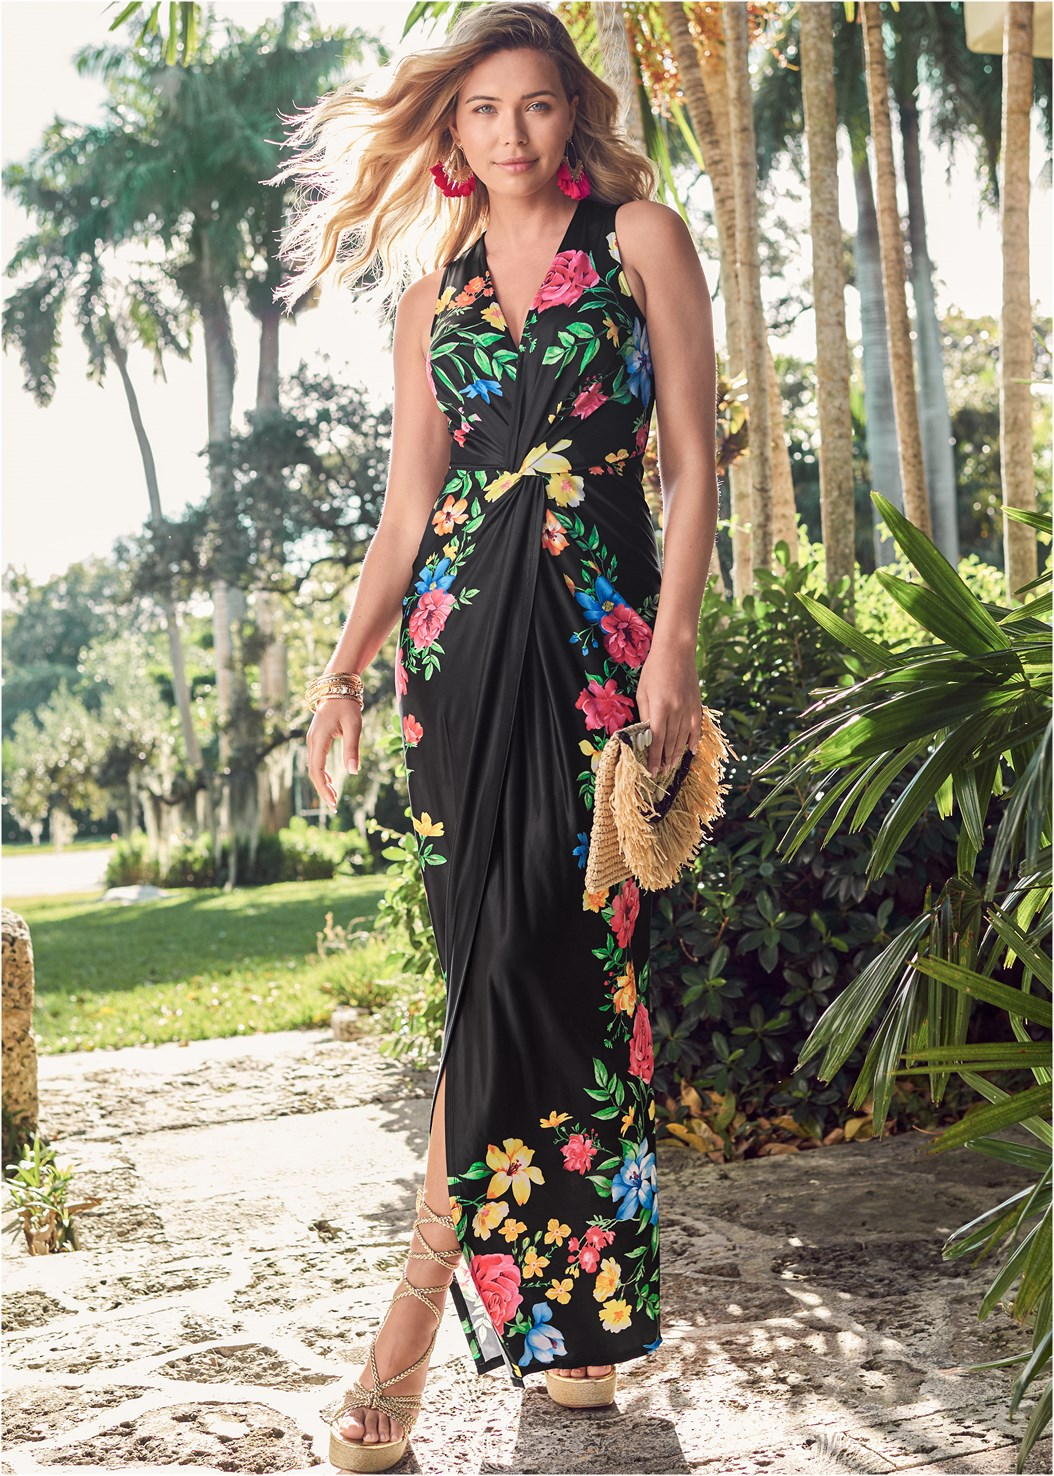 Twist Front Floral Maxi Dress,Lace Up Espadrille Wedge,Wrap Around Wedges,Embellished Wedge,Tassel Rhinestone Earrings,Raffia Tassel Shell Clutch